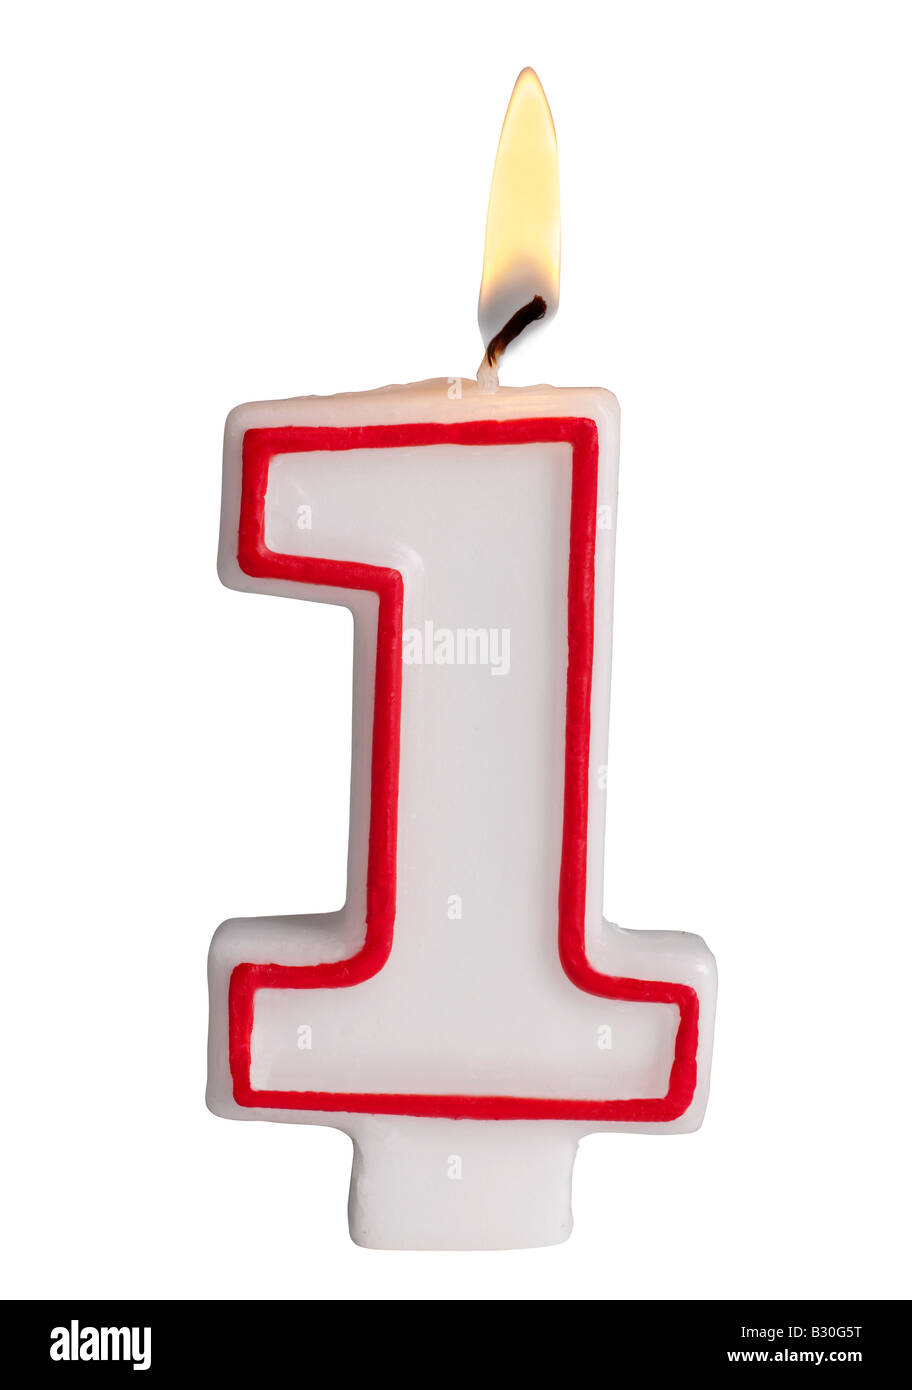 Number 1 candle - Stock Image